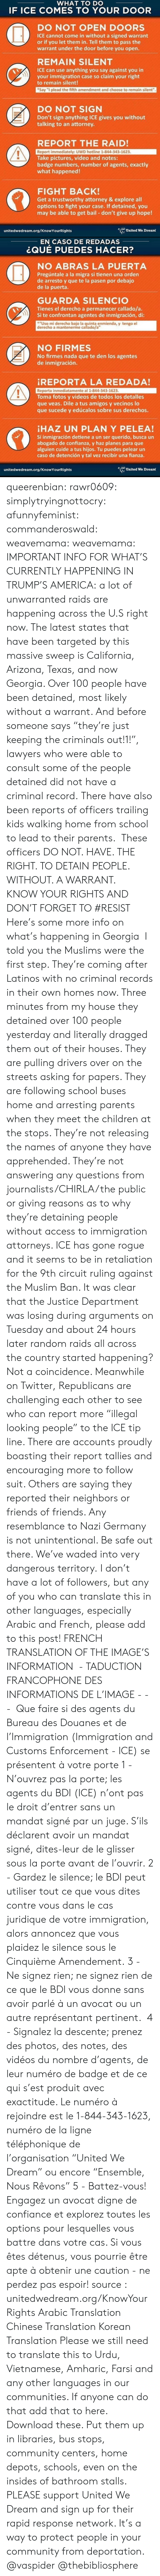 """America, Anaconda, and Children: WHAT TO DO  IF ICE COMES TO YOUR DOOR  DO NOT OPEN DOORS  ICE cannot come in without a signed warrant  or if you let them in. Tell them to pass the  warrant under the door before you open.  REMAIN SILENT  ICE can use anything you say against you in  your immigration case so claim your right  to remain silent!  Say """"I plead the fifth amendment and choose to remain silent""""  DO NOT SIGN  Don't sign anything ICE gives you without  talking to an attorney.  REPORT THE RAID!  Report immediately: UWD hotline 1-844-343-1623.  Take pictures, video and notes:  badge numbers, number of agents, exactly  what happened!  FIGHT BACK!  Get a trustworthy attorney & explore all  options to fight your case. If detained, you  may be able to get bail - don't give up hope!  unitedwedream.org/KnowYourRights  United We Dreami   EN CASO DE REDADAS  ¿QUÉ PUEDES HACER?  NO ABRAS LA PUERTA  Pregúntale a la migra si tienen una orden  de arresto y que te la pasen por debajo  de la puerta.  GUARDA SILENCIO  Tienes el derecho a permanecer callado/a.  Si te confrontan agentes de inmigración, di:  """"Uso mi derecho bajo la quinta enmienda, y tengo el  derecho a mantenerme callado/a""""  NO FIRMES  No firmes nada que te den los agentes  de inmigracion.  REPORTA LA REDADA!  Reporta inmediatamente al 1-844-343-1623.  Toma fotos y videos de todos los detalles  que veas. Dile a tus amigos y vecinos lo  que sucede y edúcalos sobre sus derechos.  HAZ UN PLAN Y PELEA!  Sí inmigración detiene a un ser querido, busca un  abogado de confianza, y haz planes para que  alguien cuide a tus hijos. Tu puedes pelear un  caso de detención y tal vez recibir una fianza.  unitedwedream.org/KnowYourRights  United We Dream queerenbian:  rawr0609:   simplytryingnottocry:  afunnyfeminist:  commanderoswald:   weavemama:  weavemama:  IMPORTANT INFO FOR WHAT'S CURRENTLY HAPPENING IN TRUMP'S AMERICA:a lot of unwarranted raids are happening across the U.S right now. The latest states that have been targ"""